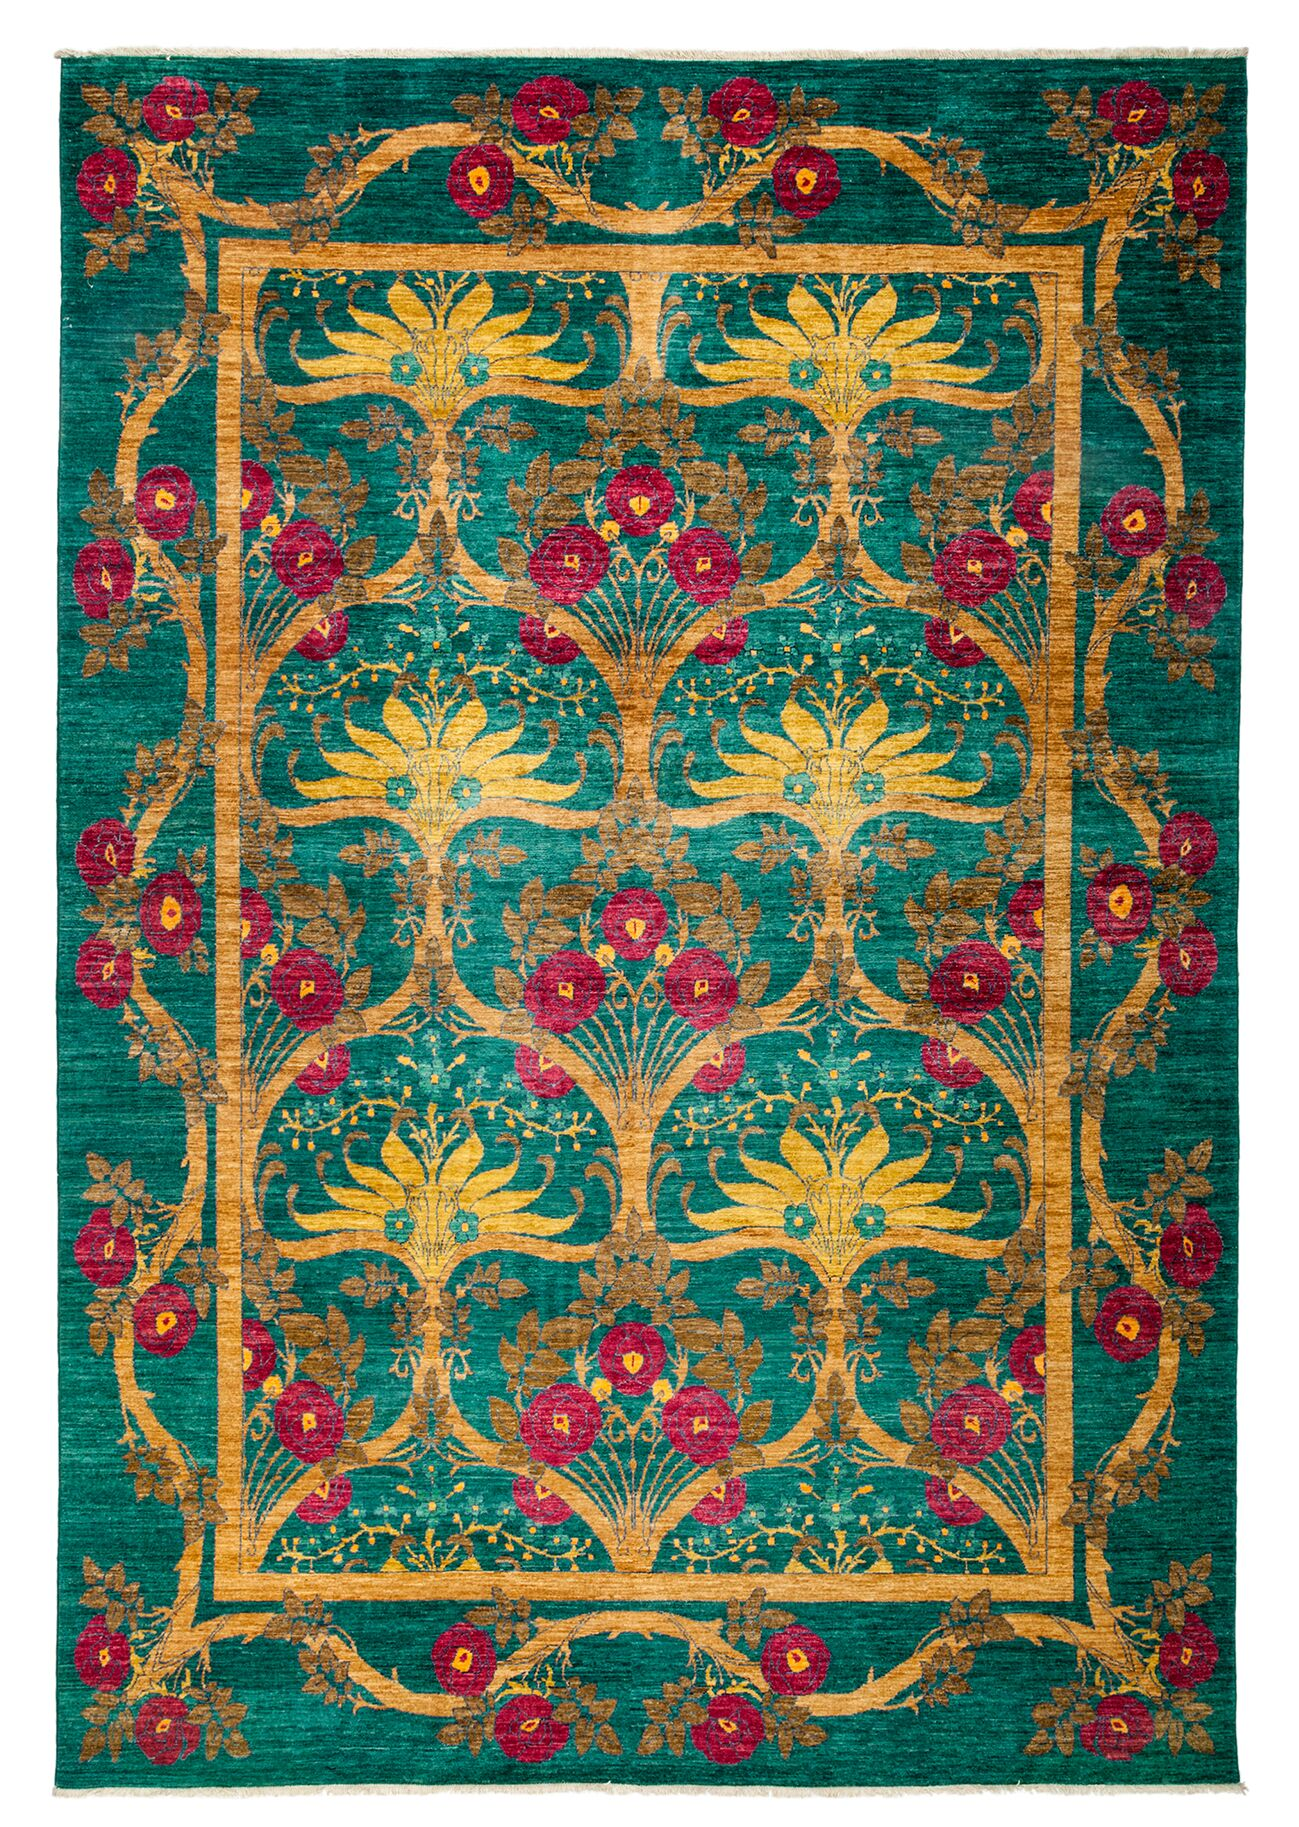 One-of-a-Kind Arts and Crafts Hand-Knotted Green / Yellow Area Rug